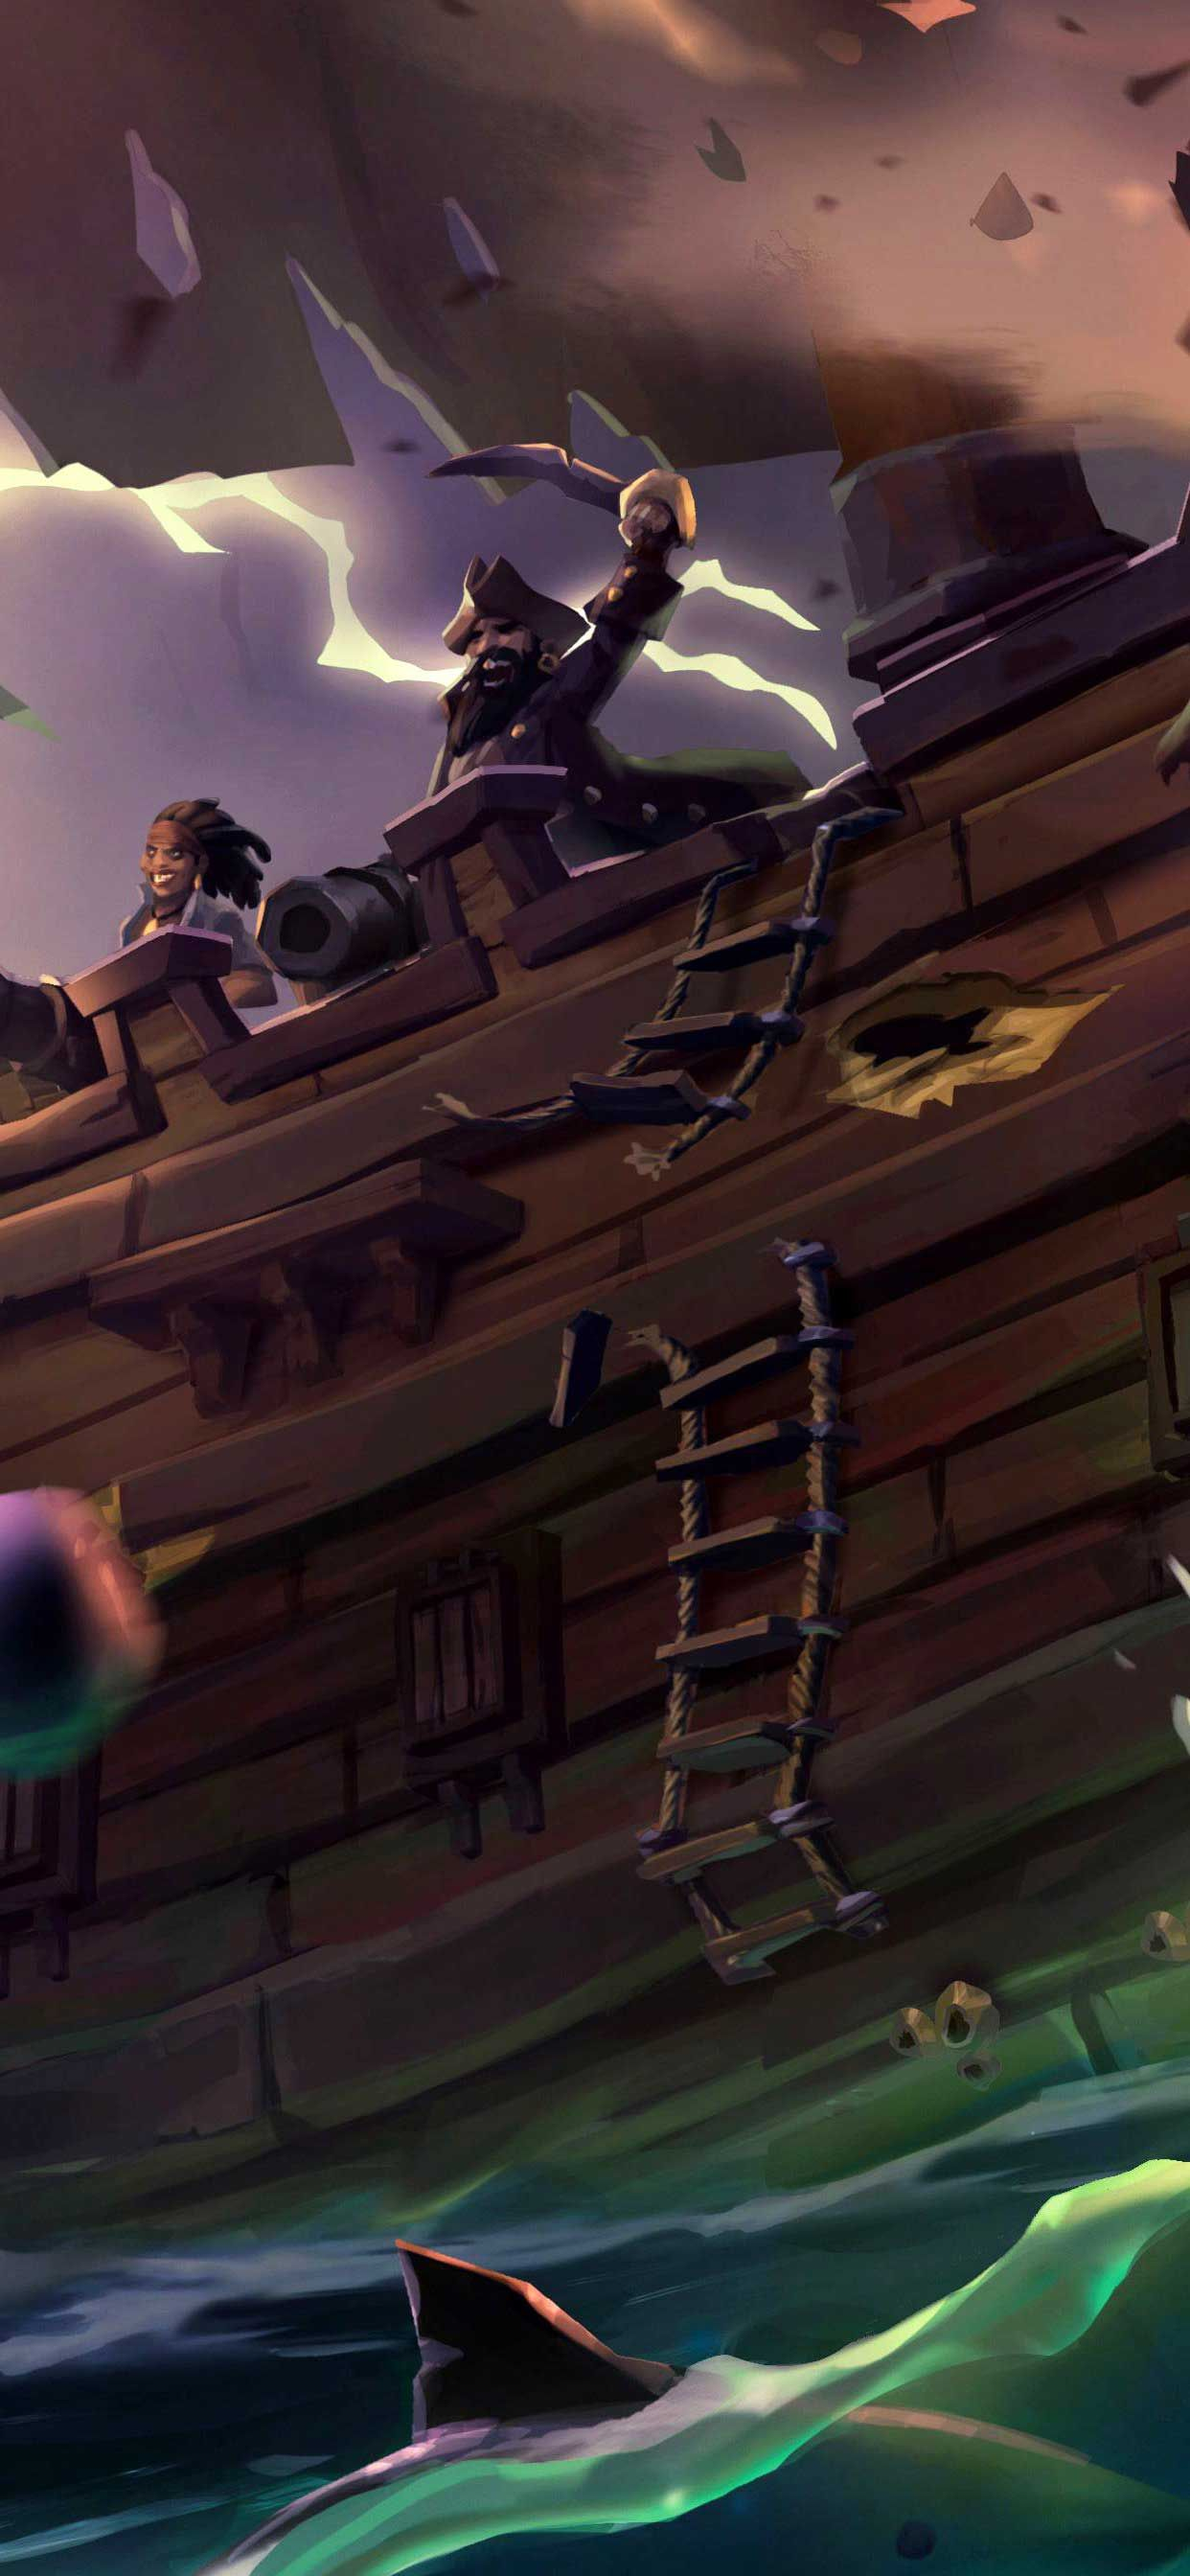 Sea Of Thieves J Iphone Pro Ma Wallpaper In 2020 Sea Of Thieves